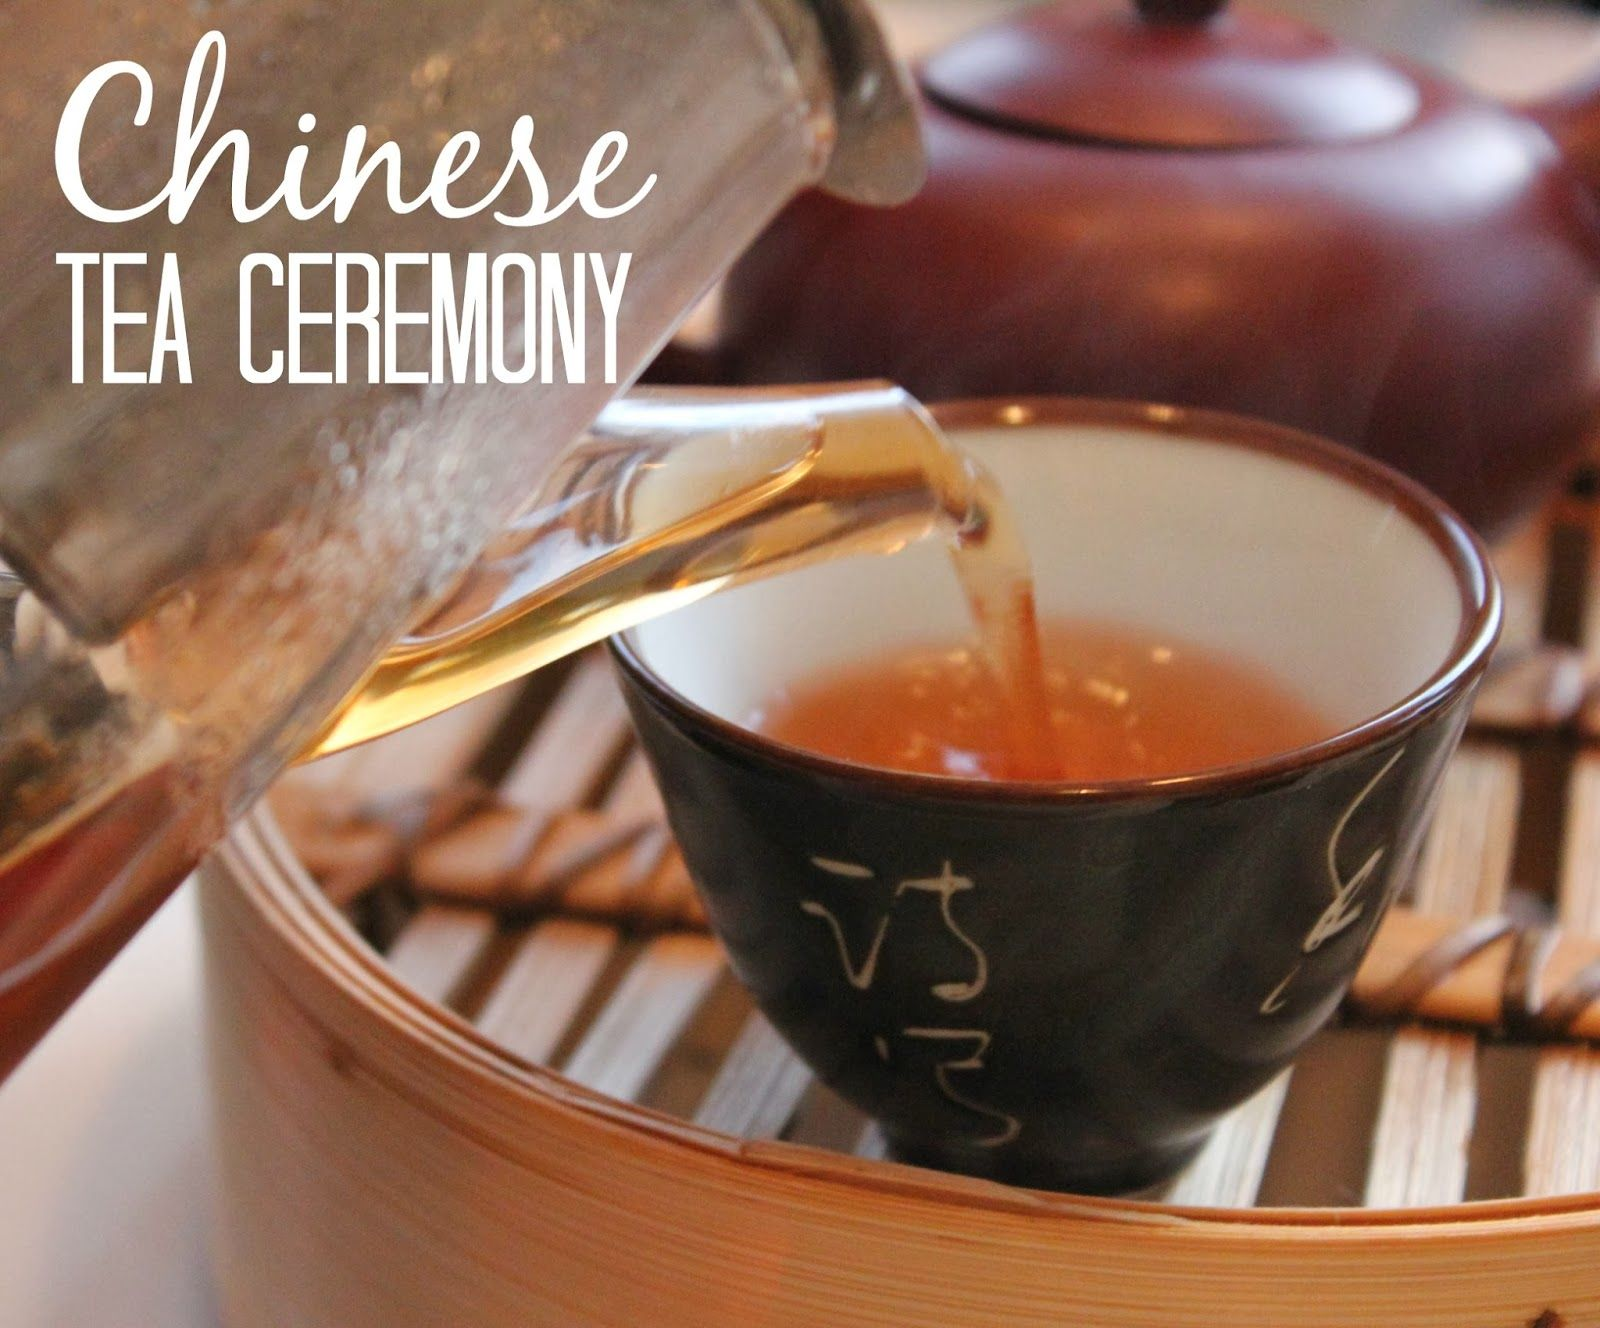 Having A Chinese Tea Ceremony Could Be A Fun Lesson To Go